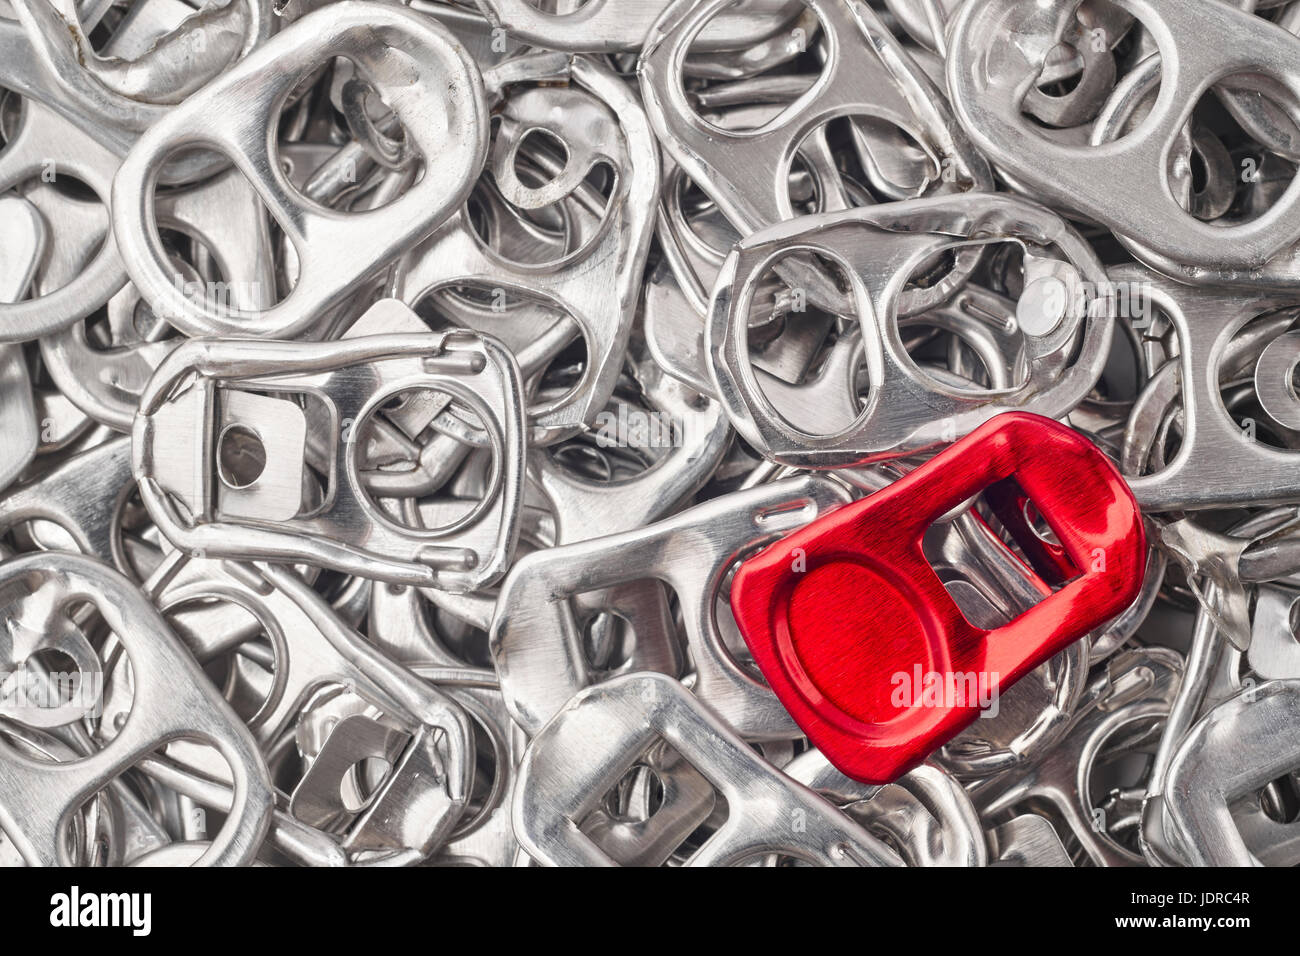 Recycling aluminum background with pull-tab pieces. Metallic waste. Horizontal - Stock Image